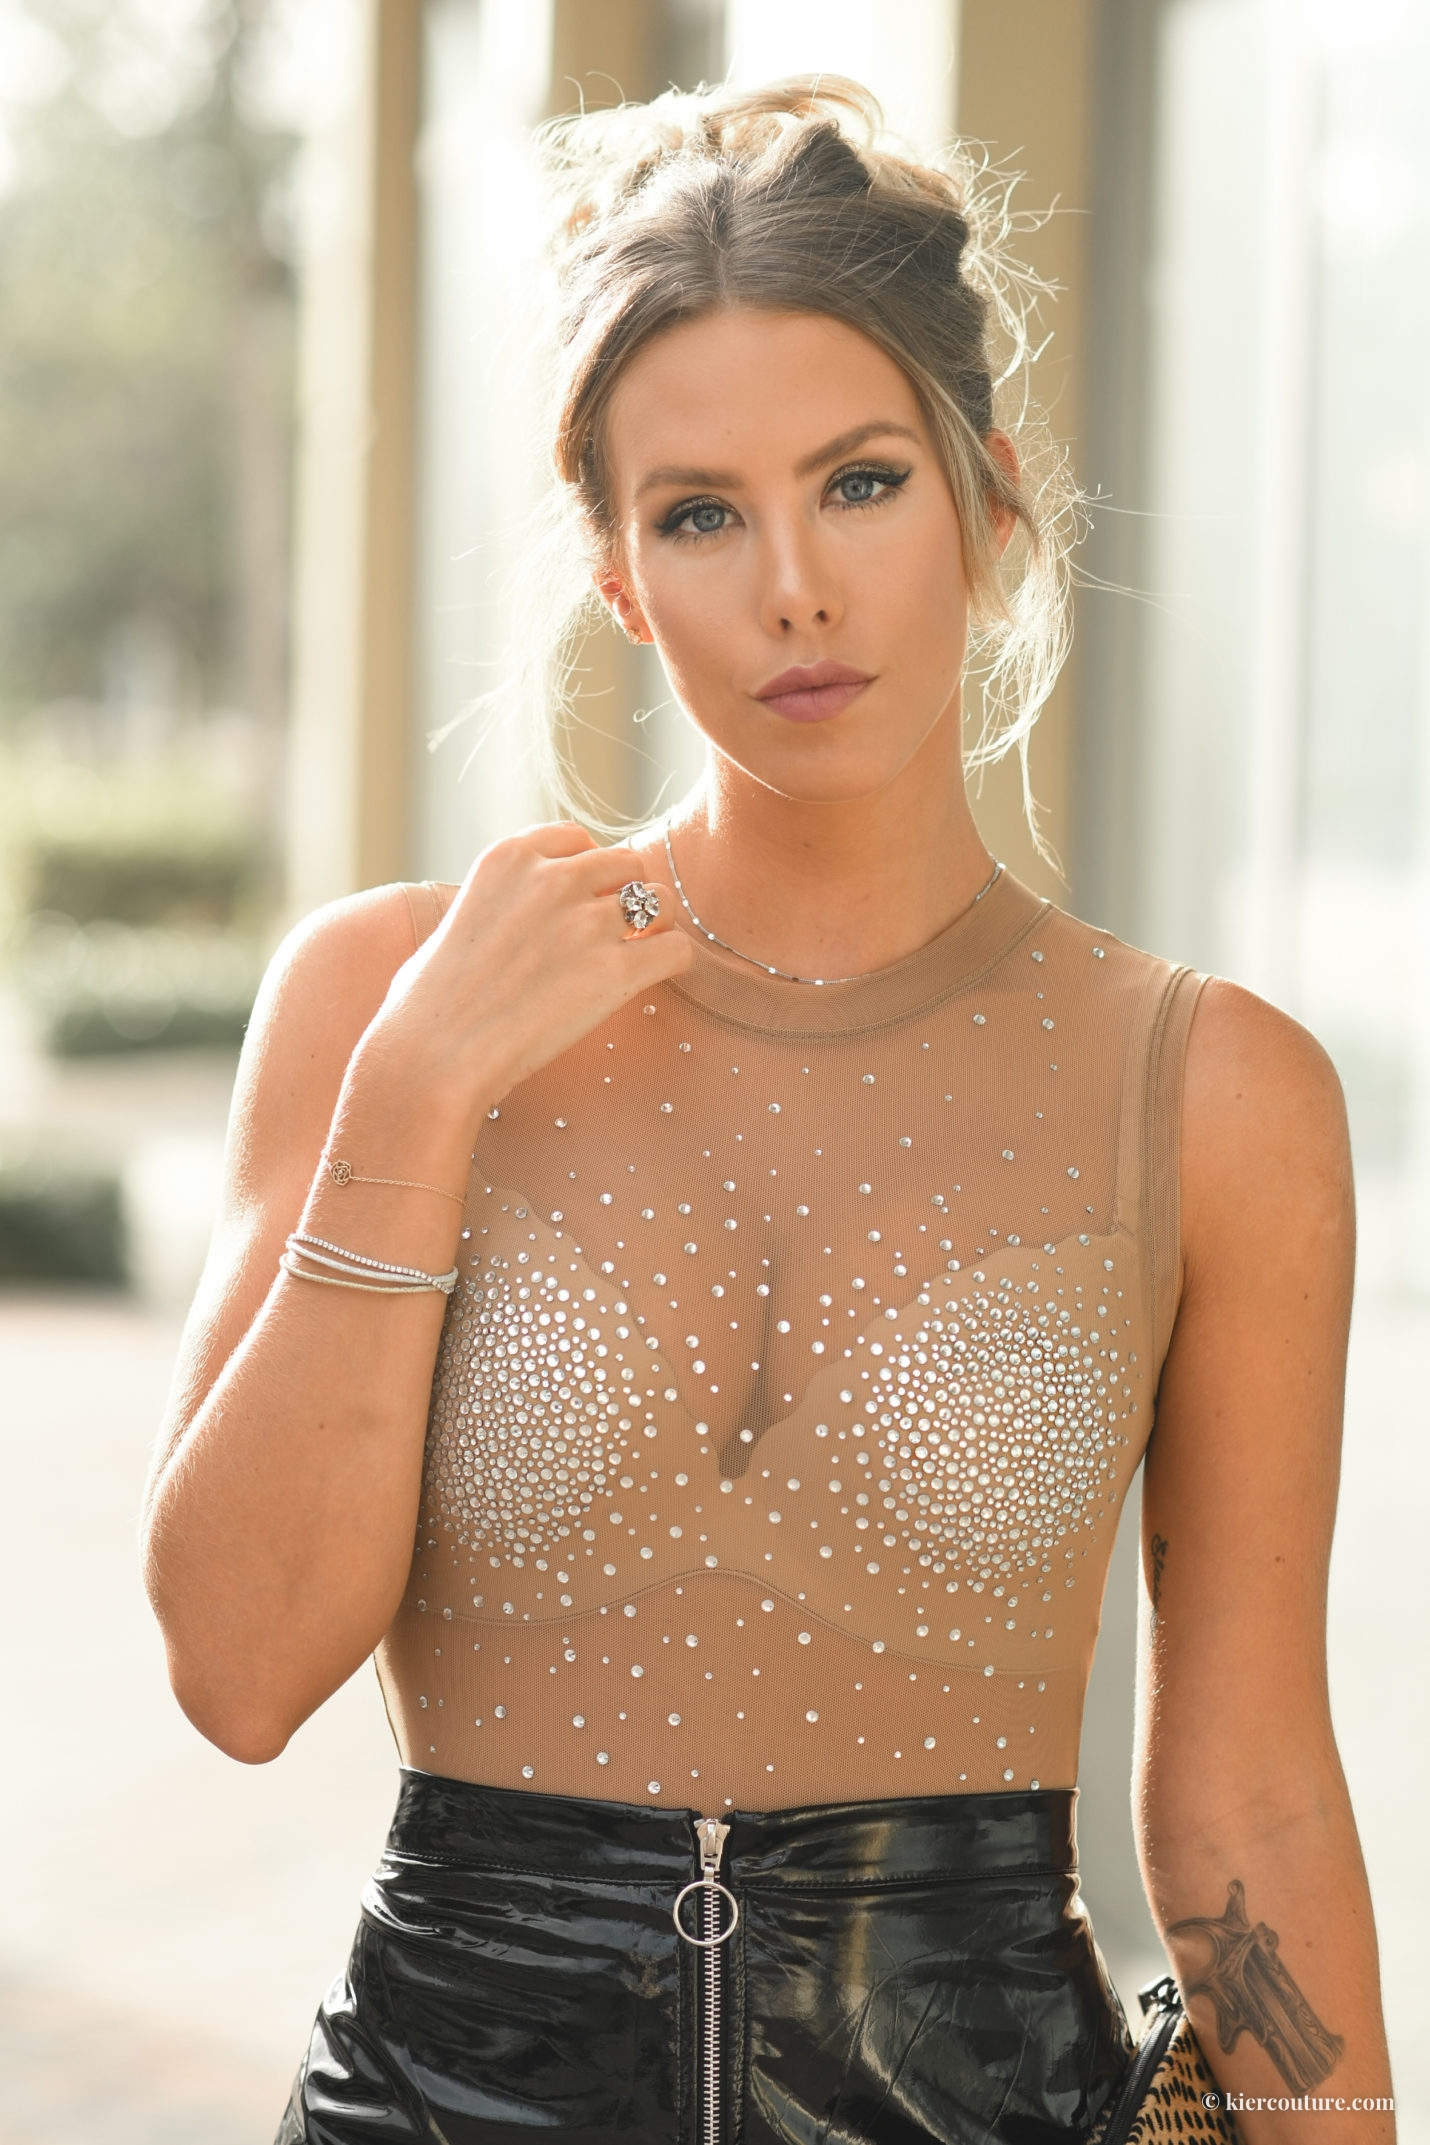 show girl crystal sheer body suit